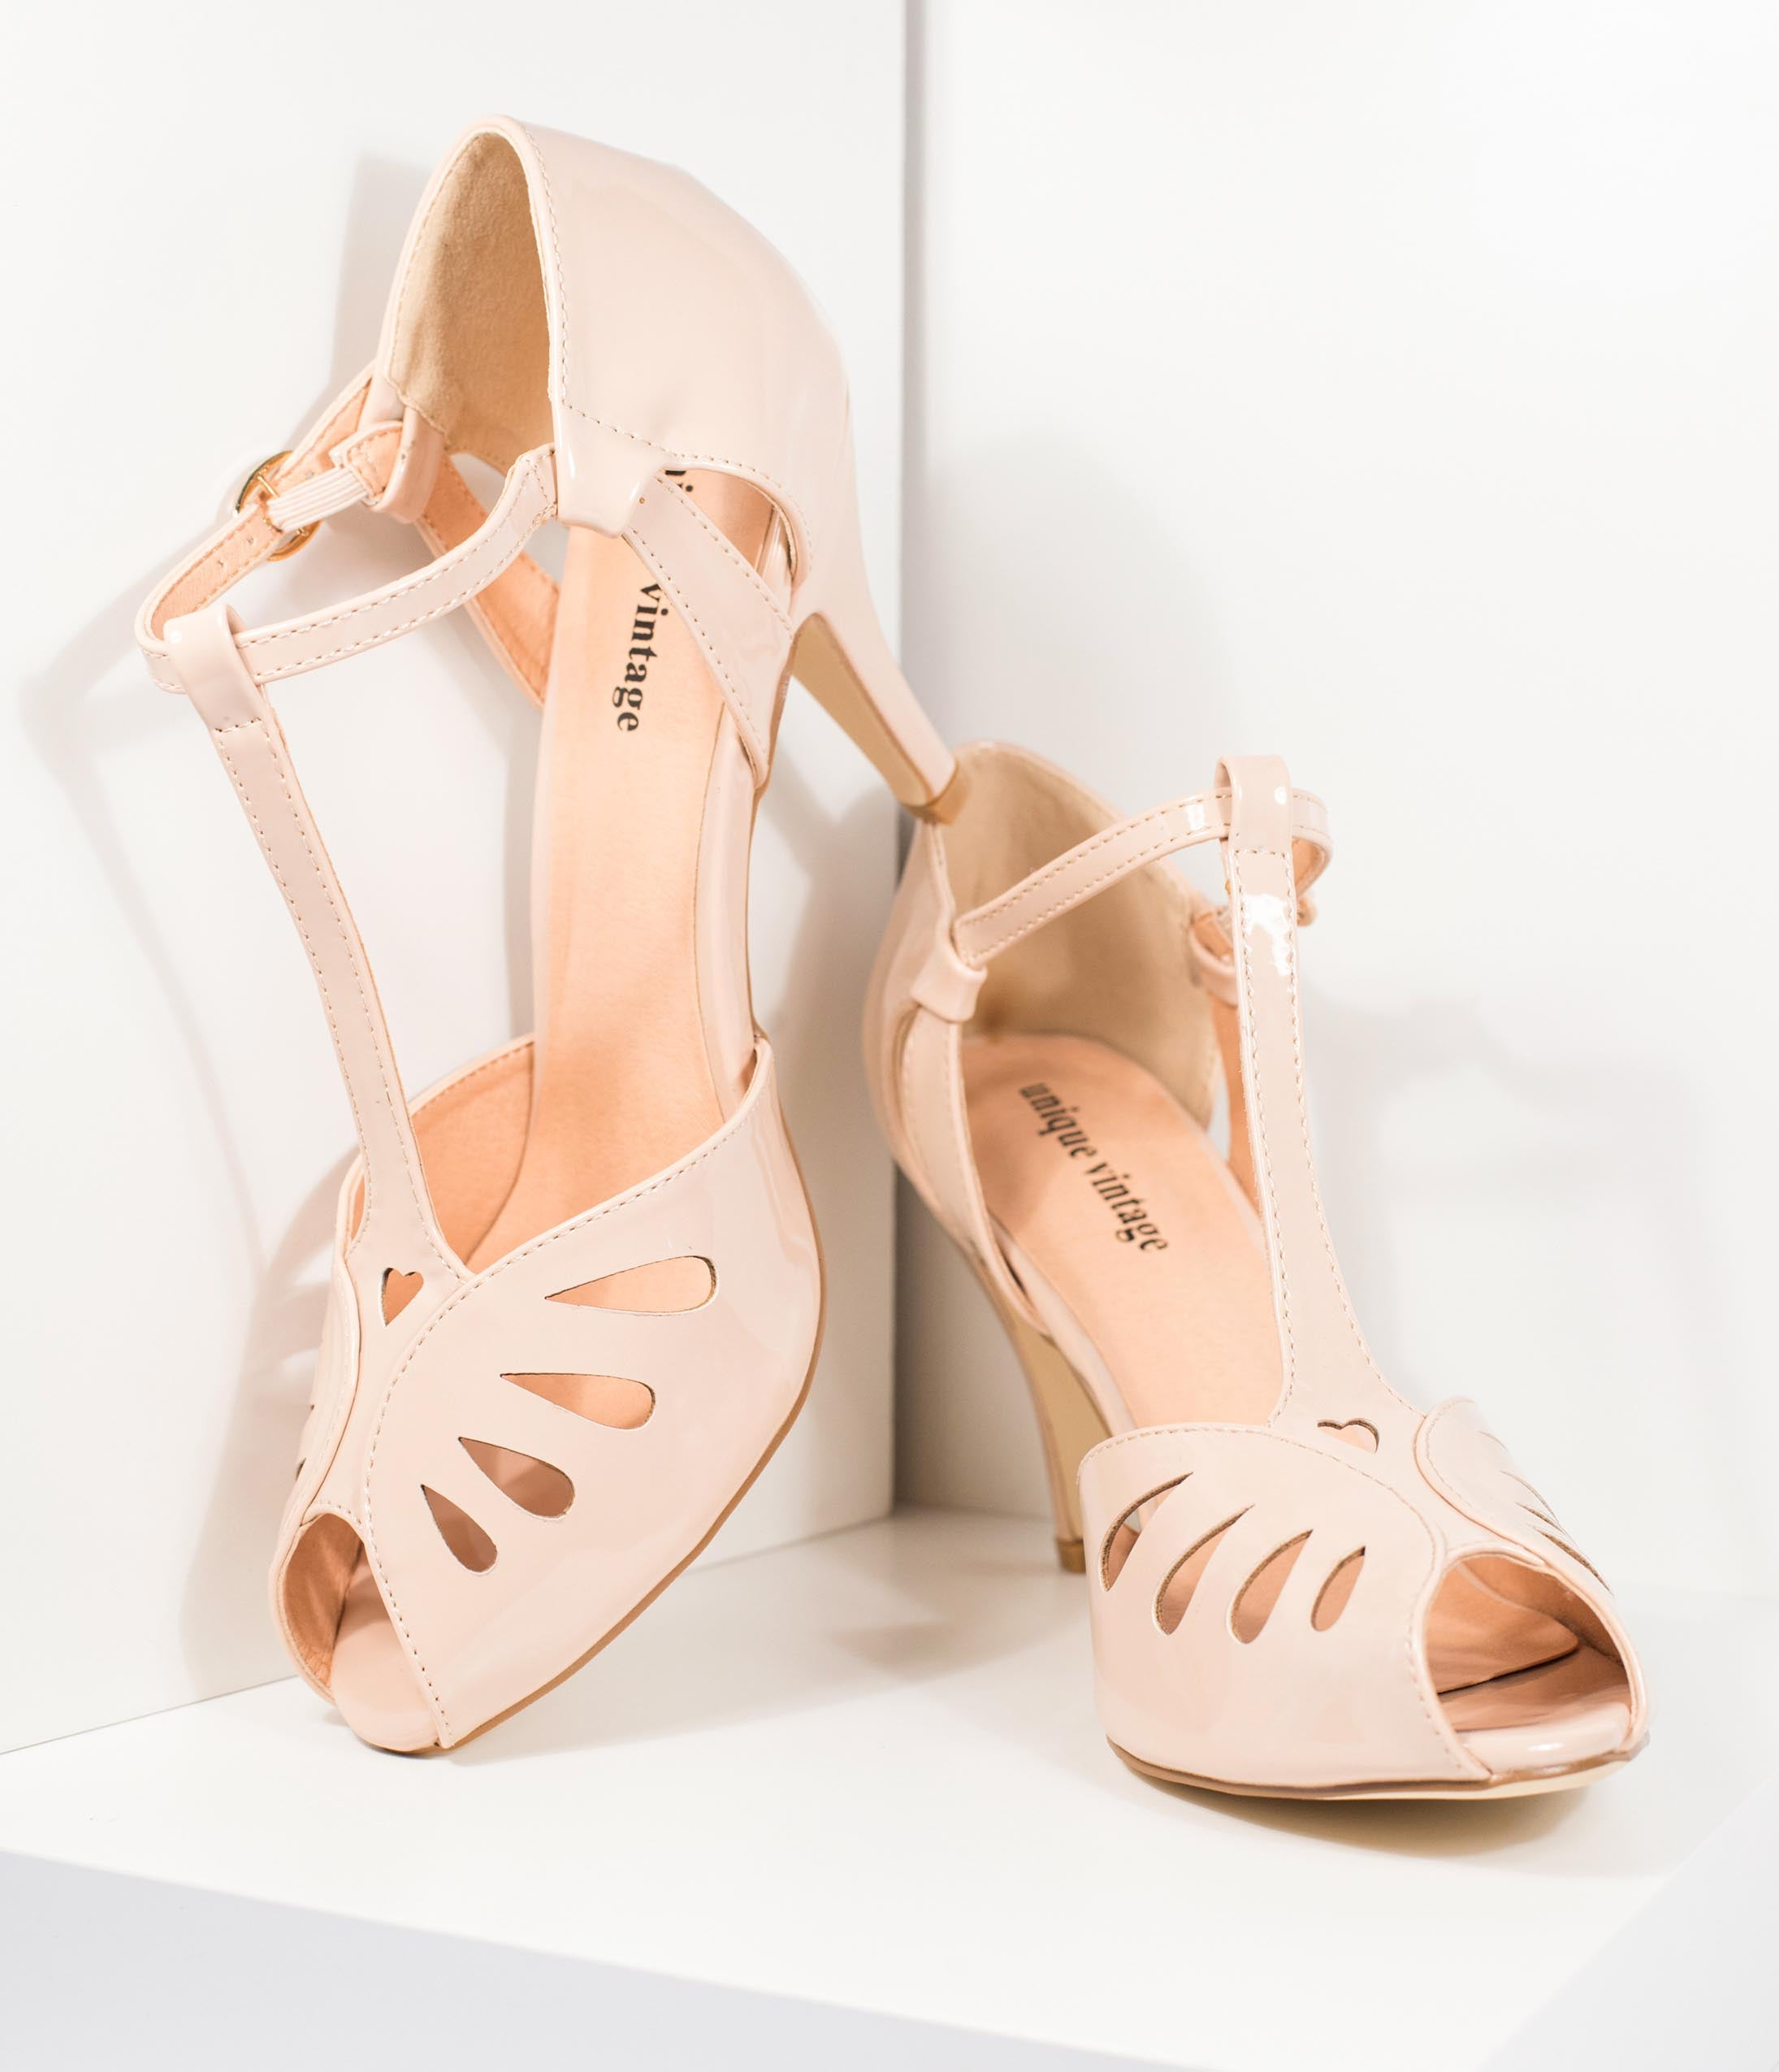 1940s Style Wedding Dresses | Classic Wedding Dresses Unique Vintage Beige Patent Leatherette T-Strap Everly Pumps $48.00 AT vintagedancer.com